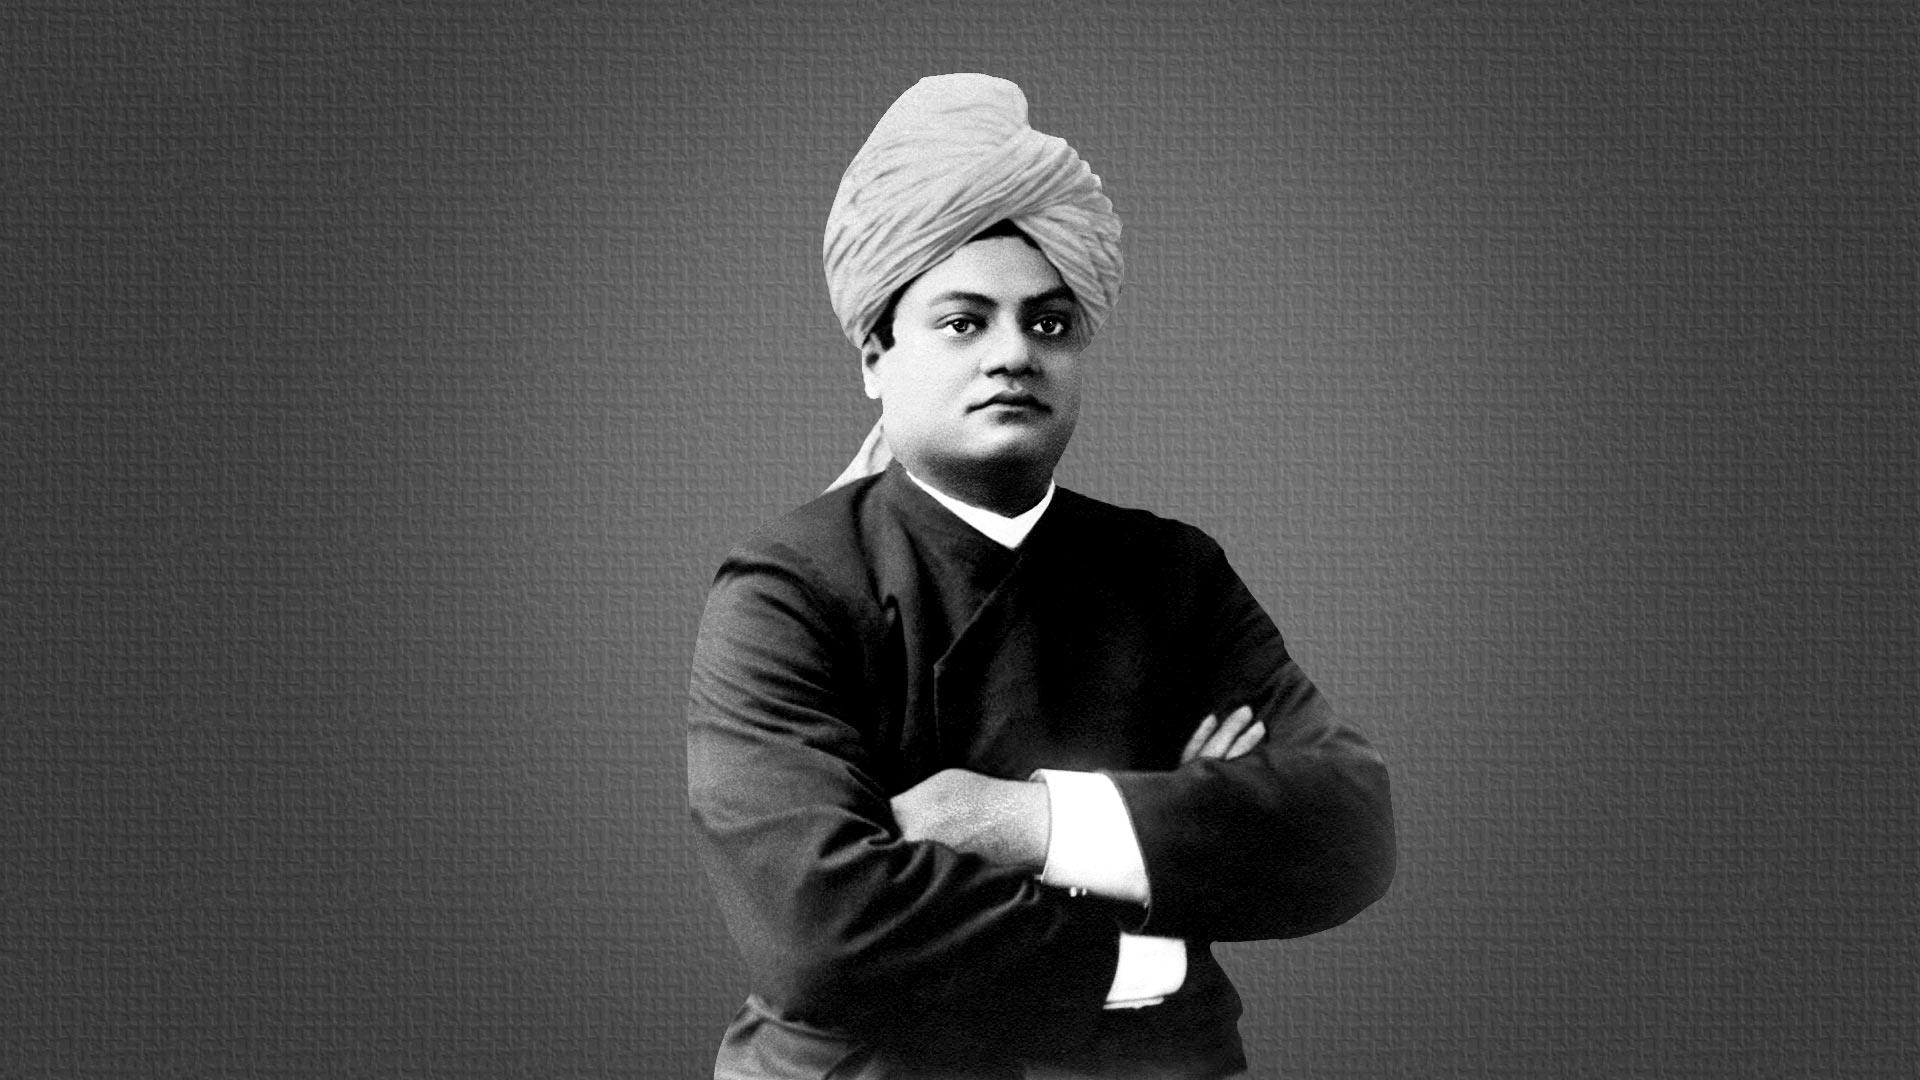 Swami-Vivekananda-wallpaper